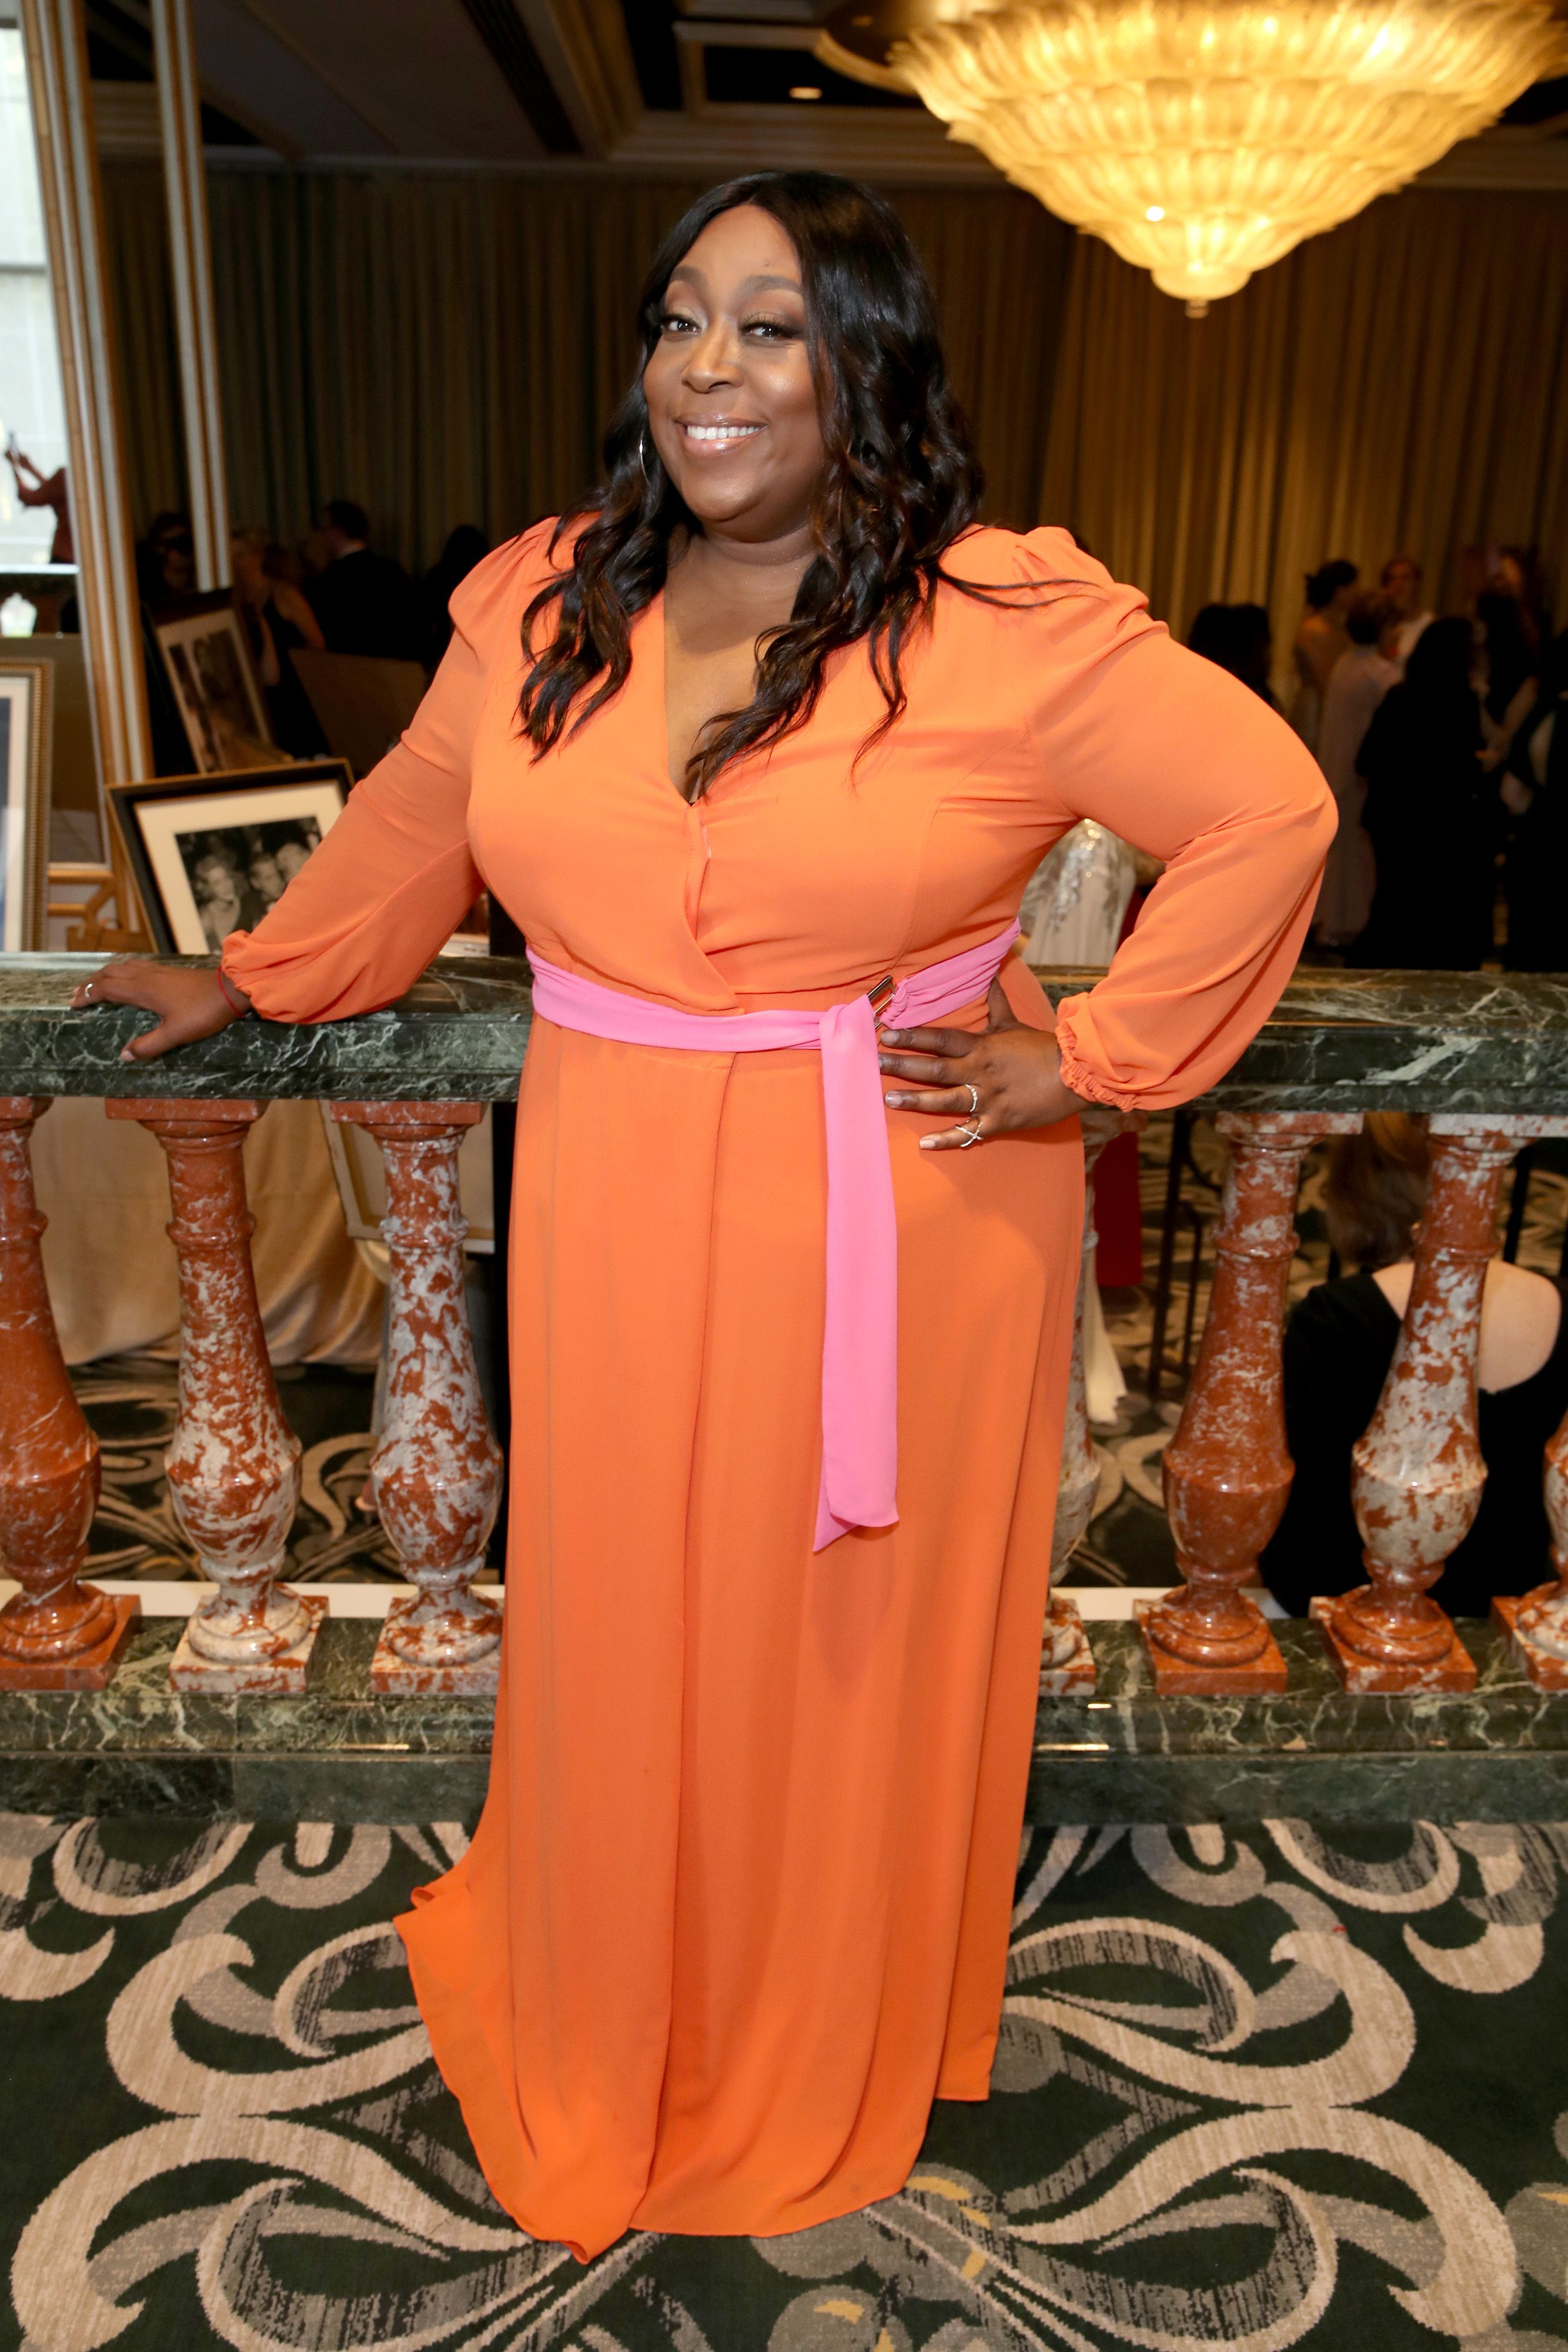 Loni Love attends the 44th Annual Gracies Awards on May 21, 2019 at the Four Seasons Beverly Wilshire Hotel in Beverly Hills, California. | Source: Getty Images